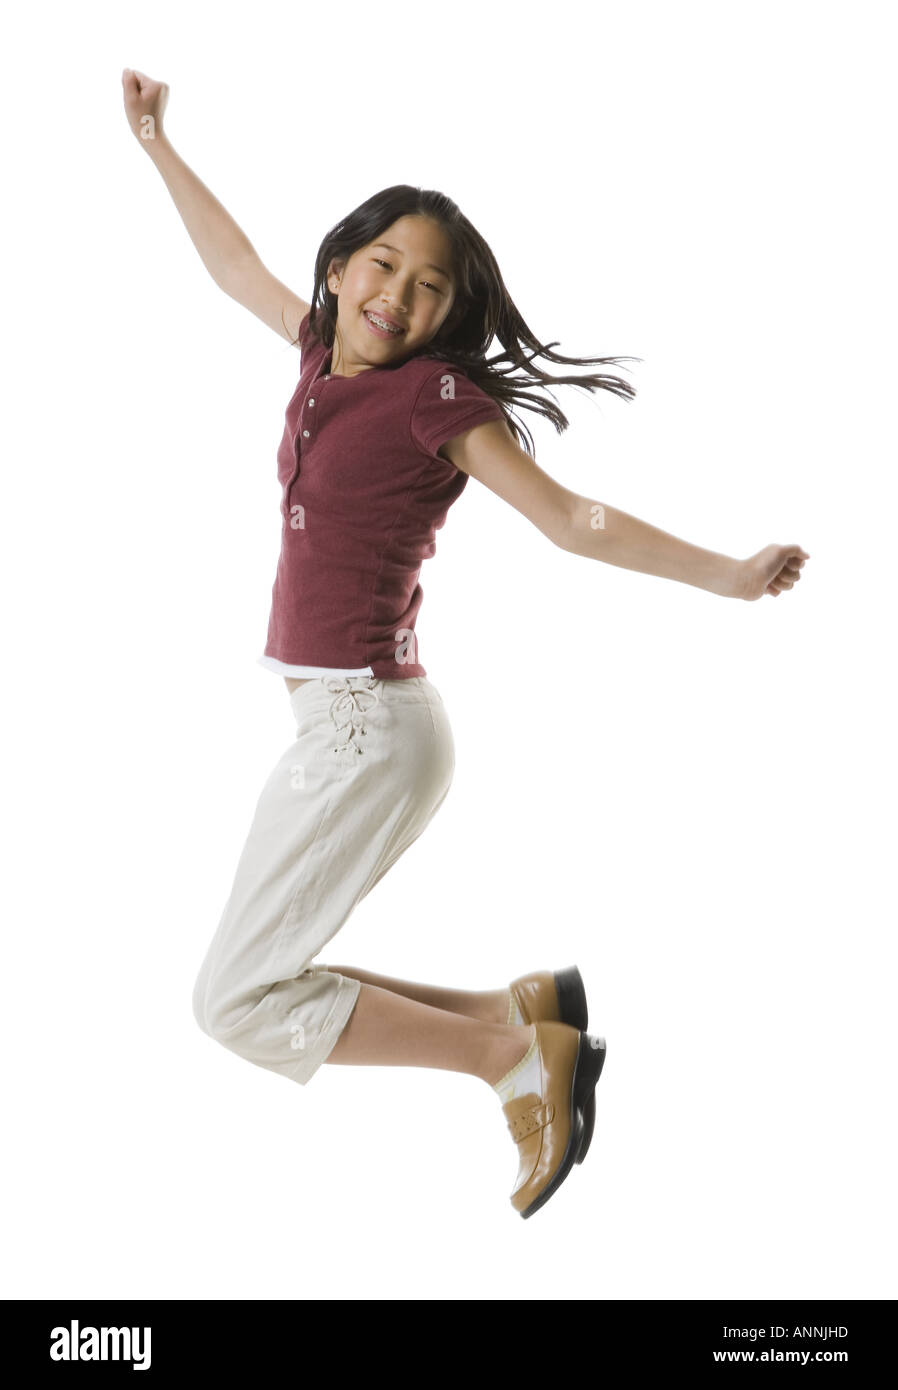 Portrait of a teenage girl jumping with her arms outstretched - Stock Image